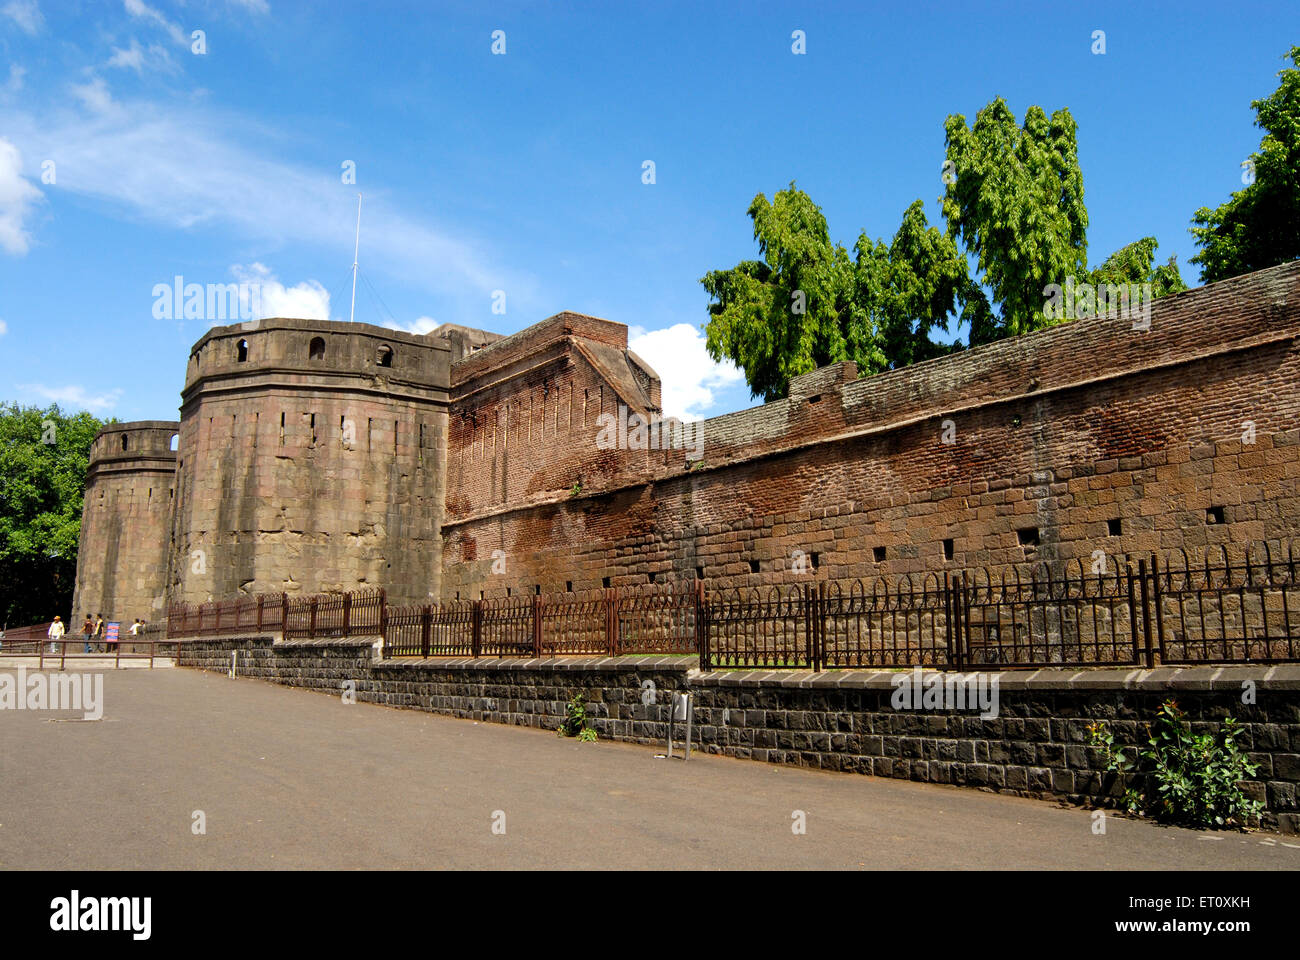 Delhi darwaja with massive bastion at shanwarwada shaniwar wada ; Pune ; Maharashtra ; India - nmk 167416 - Stock Image